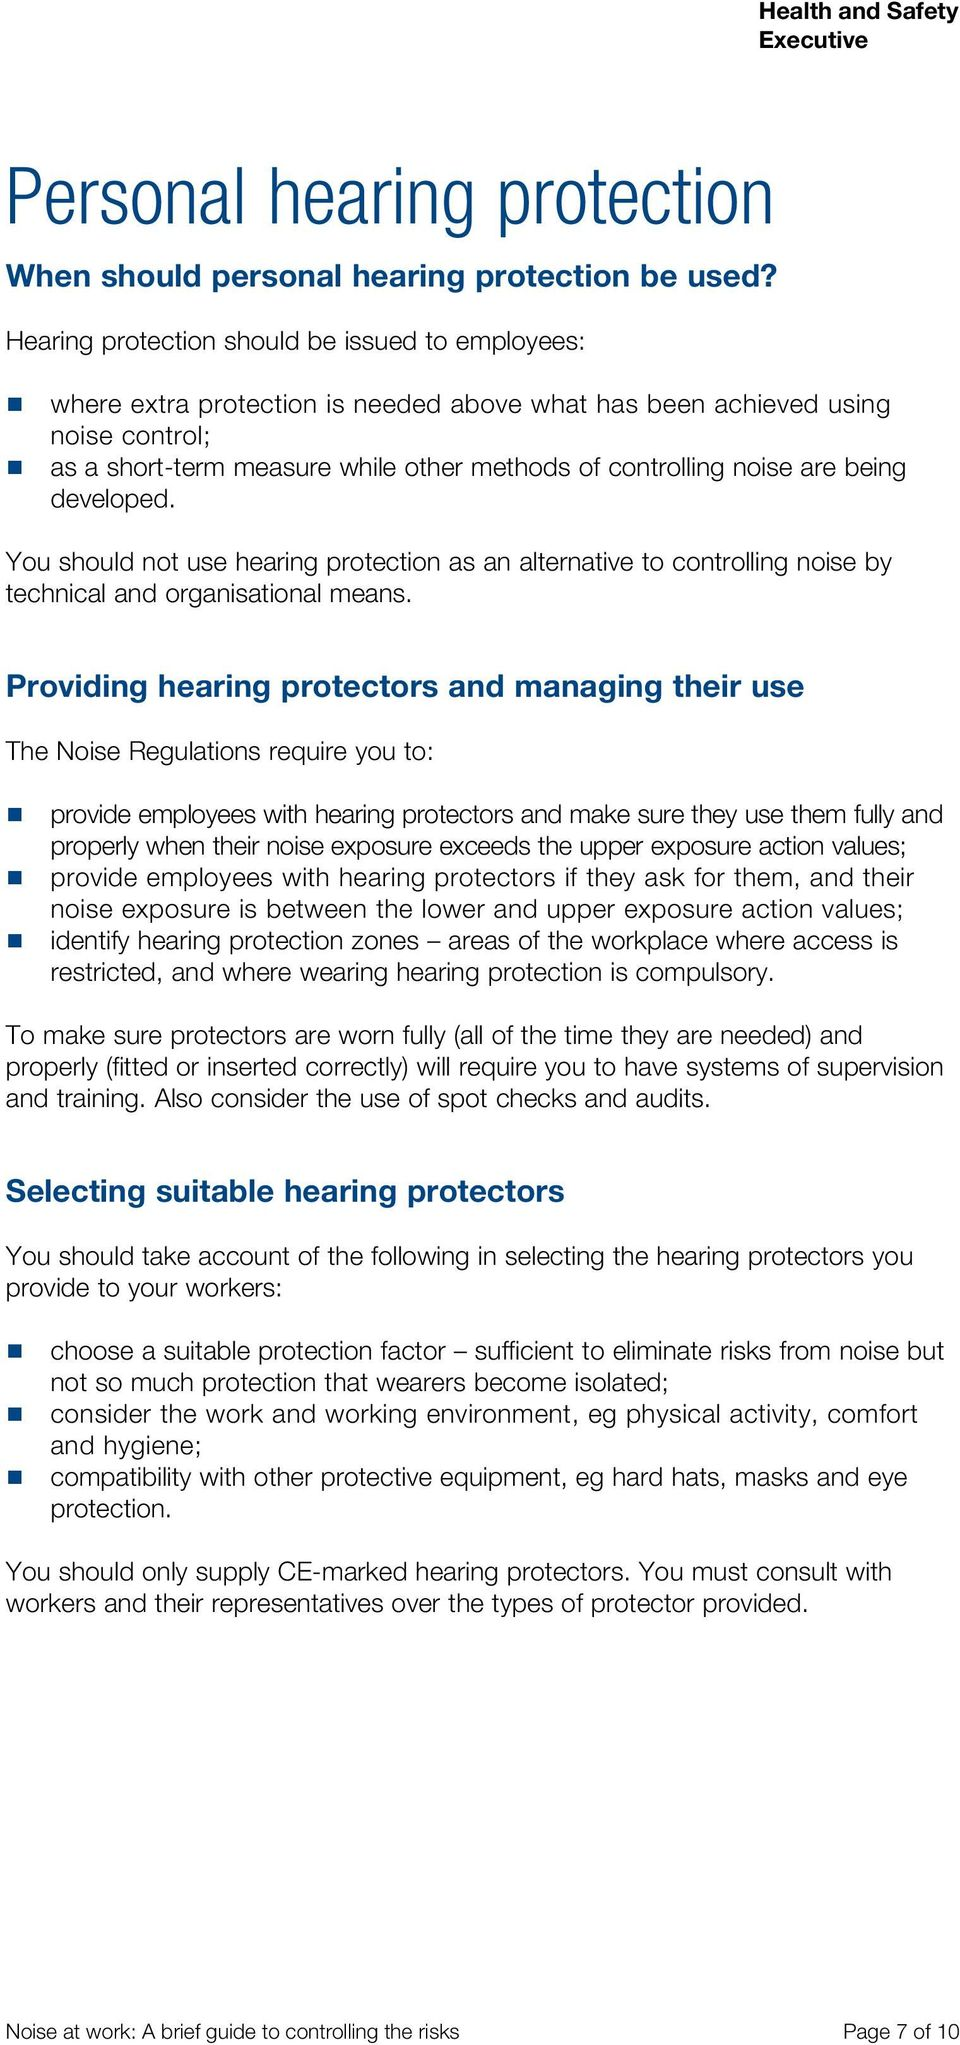 are being developed. You should not use hearing protection as an alternative to controlling noise by technical and organisational means.